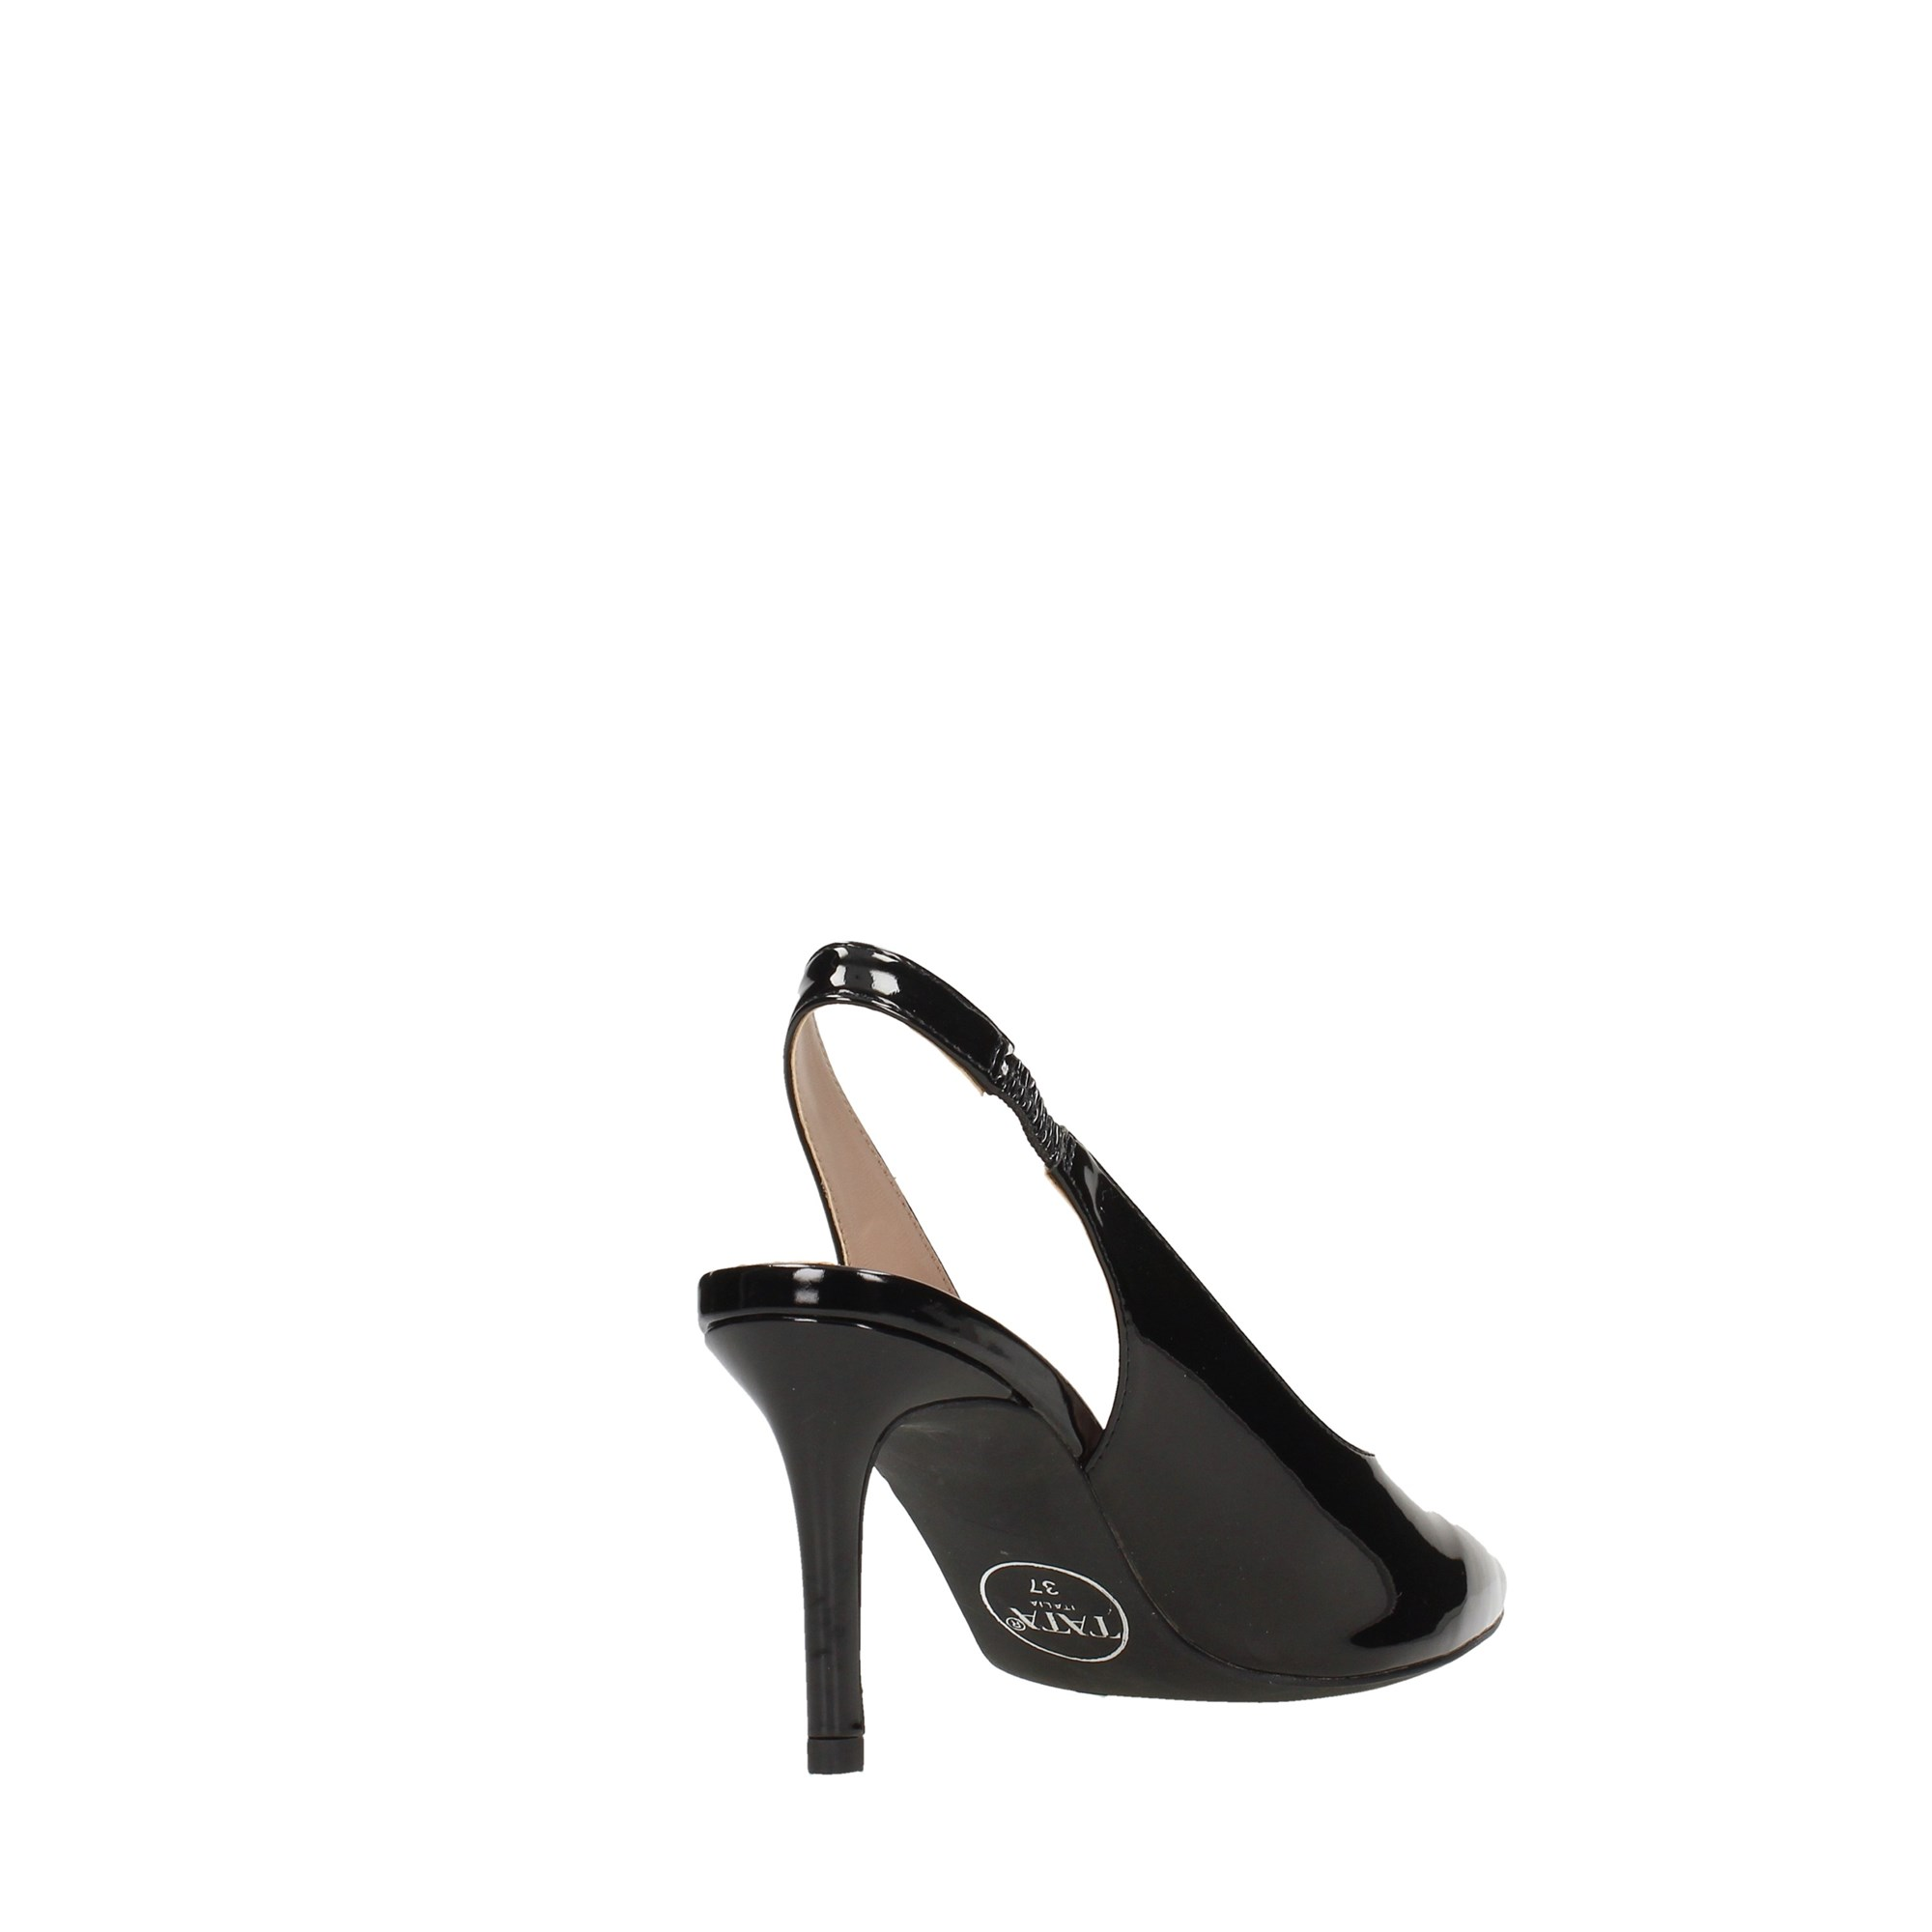 Tata Italia Shoes Woman Décolleté Black 75FG08